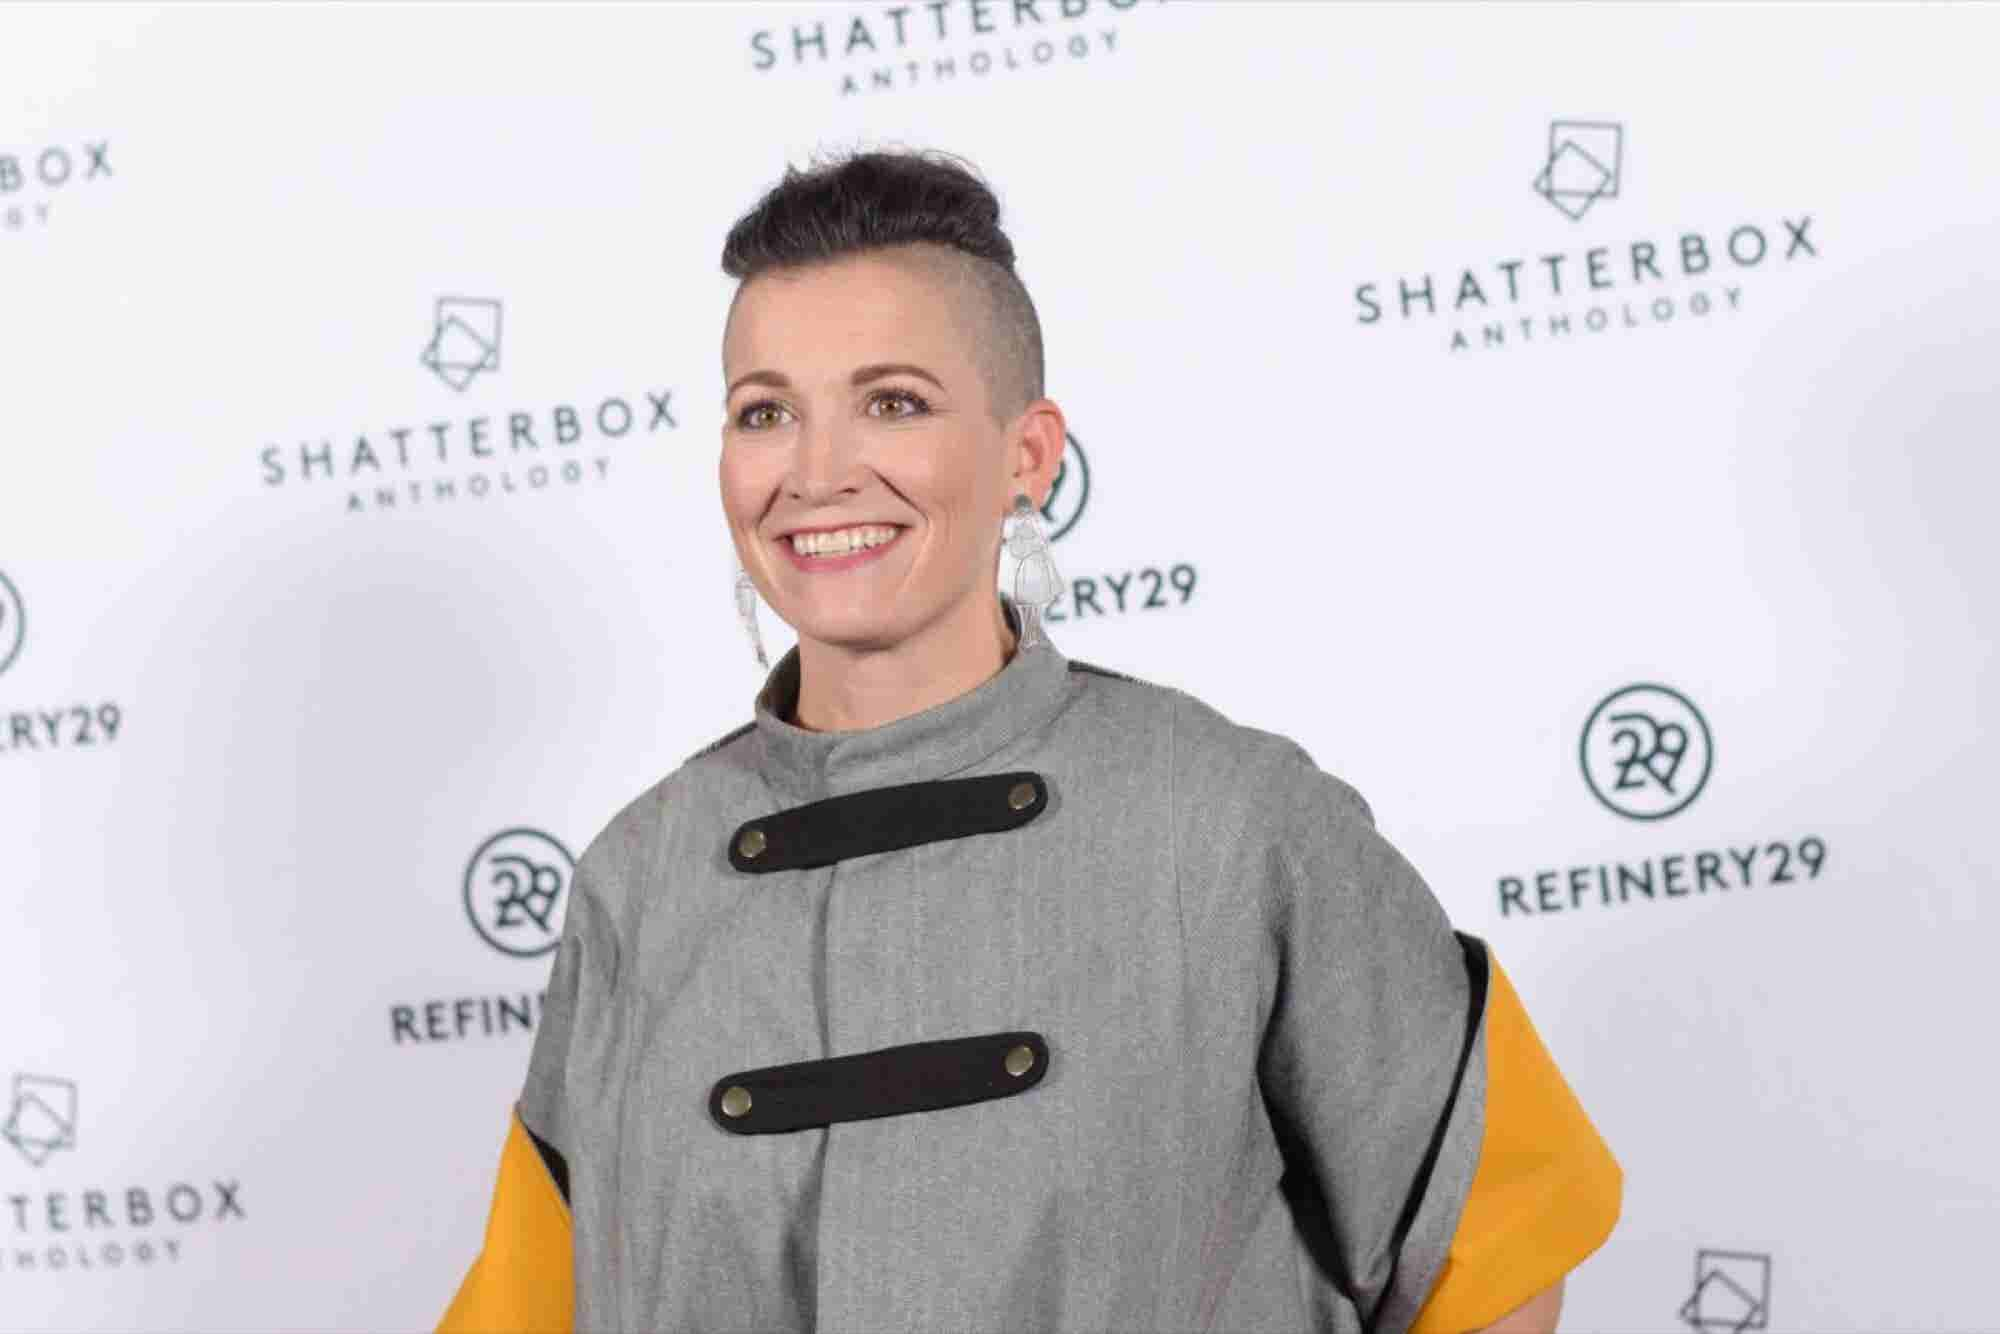 Refinery29's Co-Founder Discusses the Tough Women Who Inspired Her, Su...